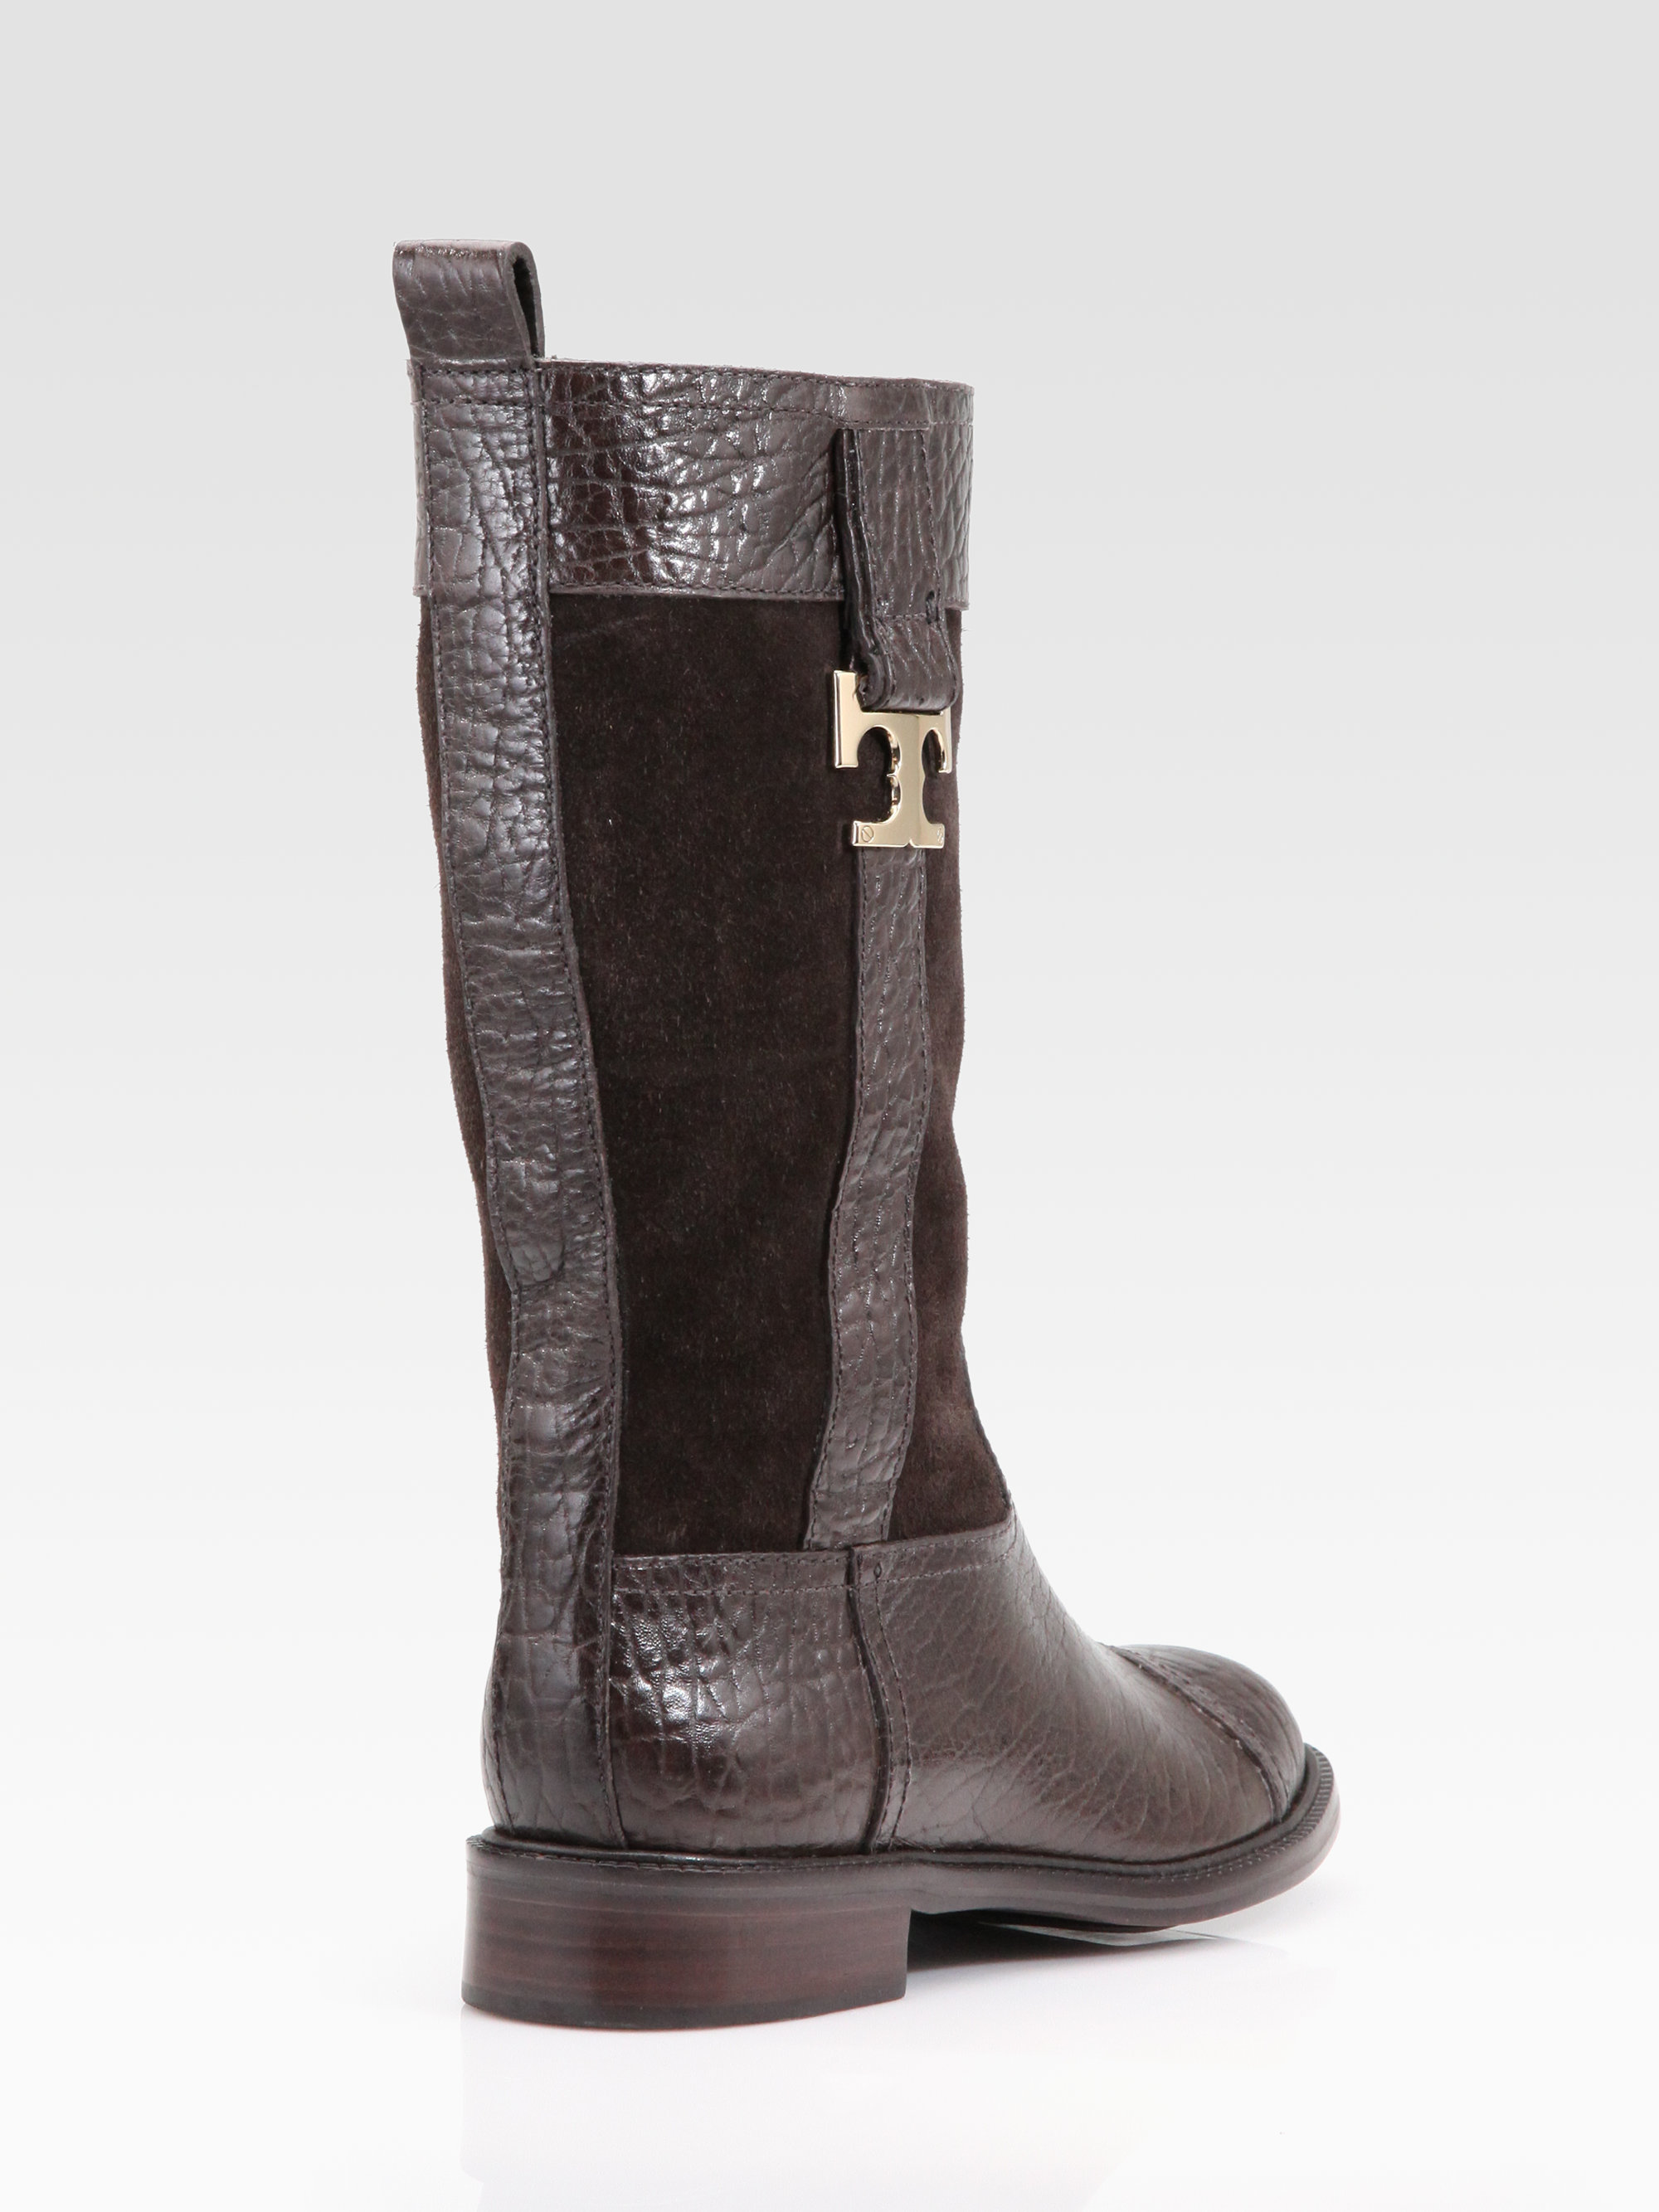 b767d652195ffa Lyst - Tory Burch Corey Leather Suede Midcalf Boots in Brown